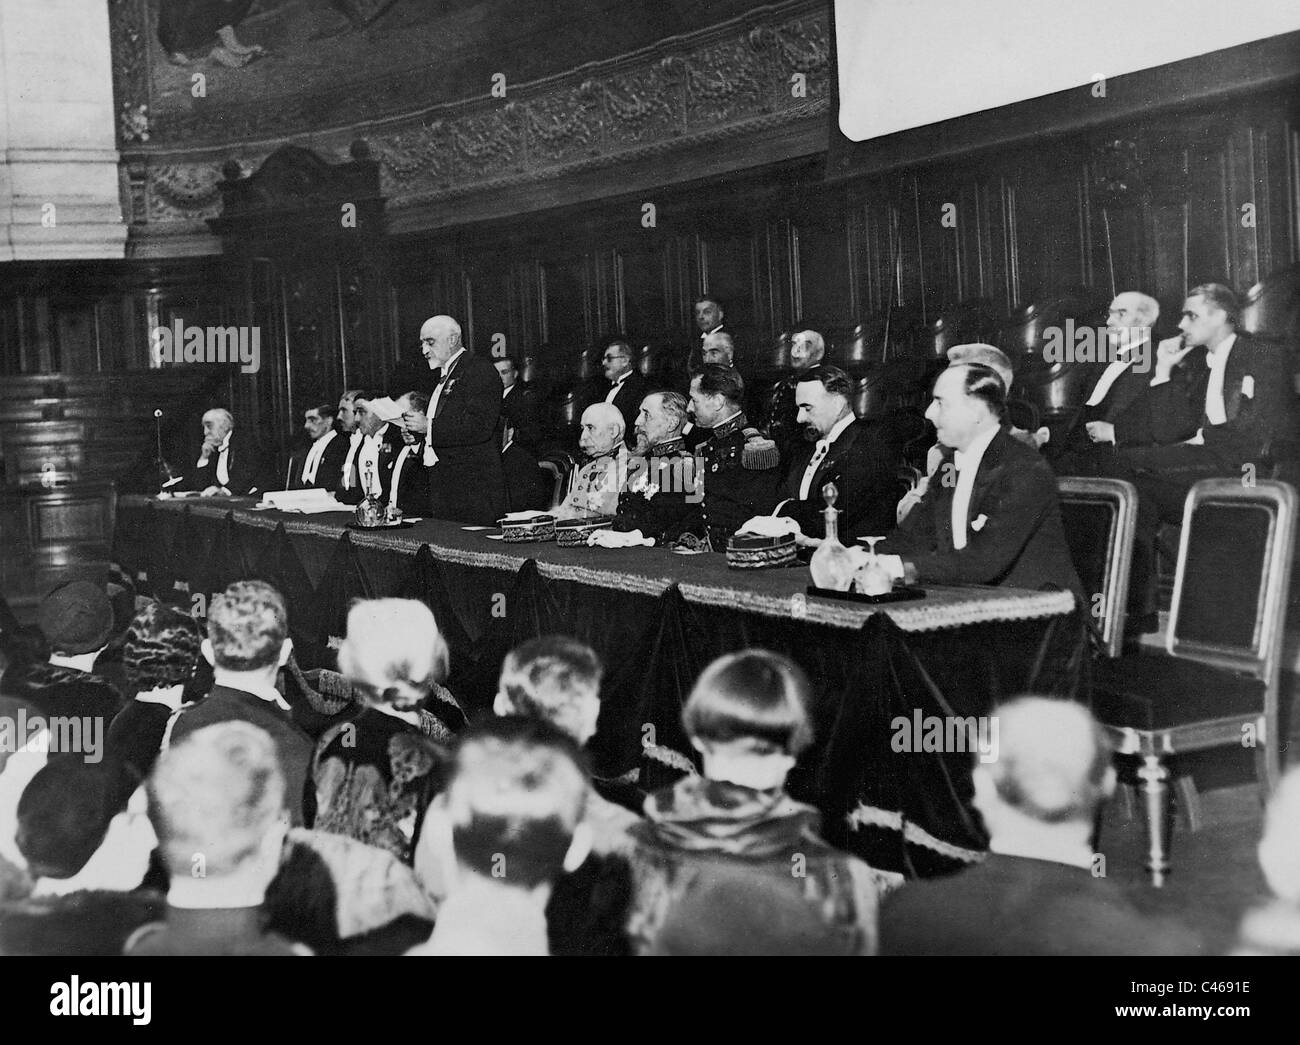 Henri Philippe Petain and Henri Gouraud in the Sorbonne in 1933 - Stock Image